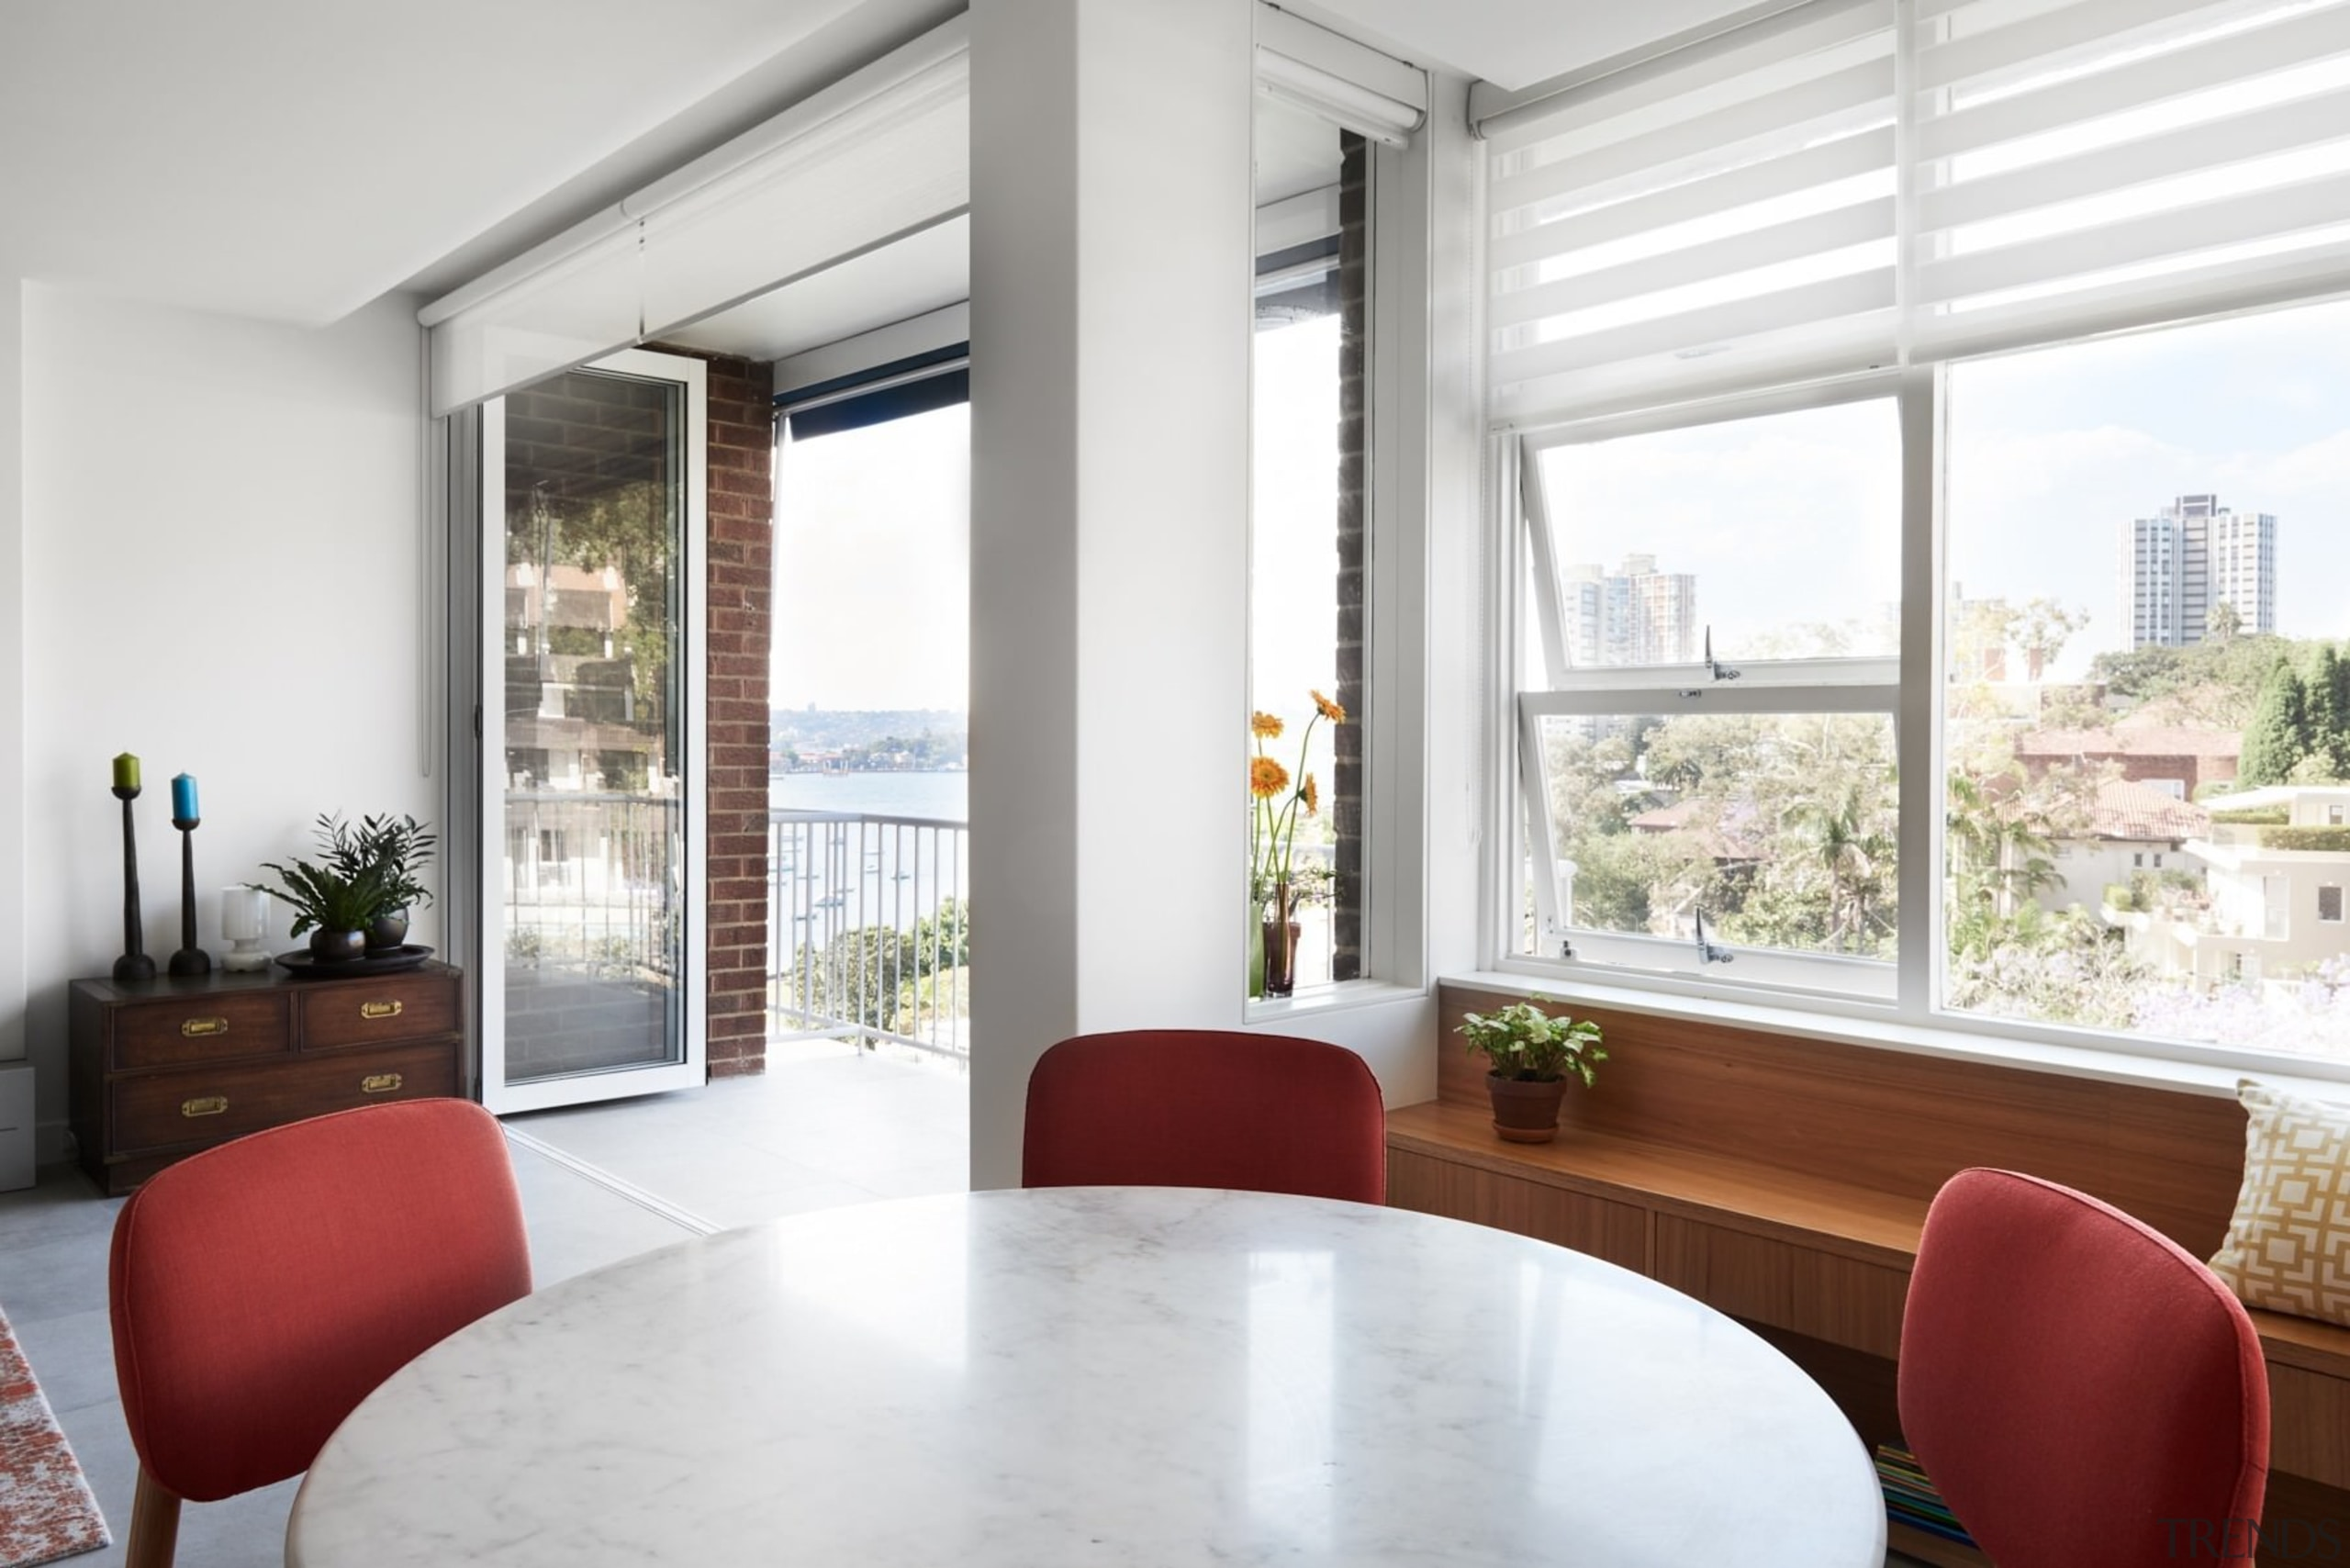 The living room has views out to the apartment, daylighting, house, interior design, living room, property, real estate, window, window covering, window treatment, white